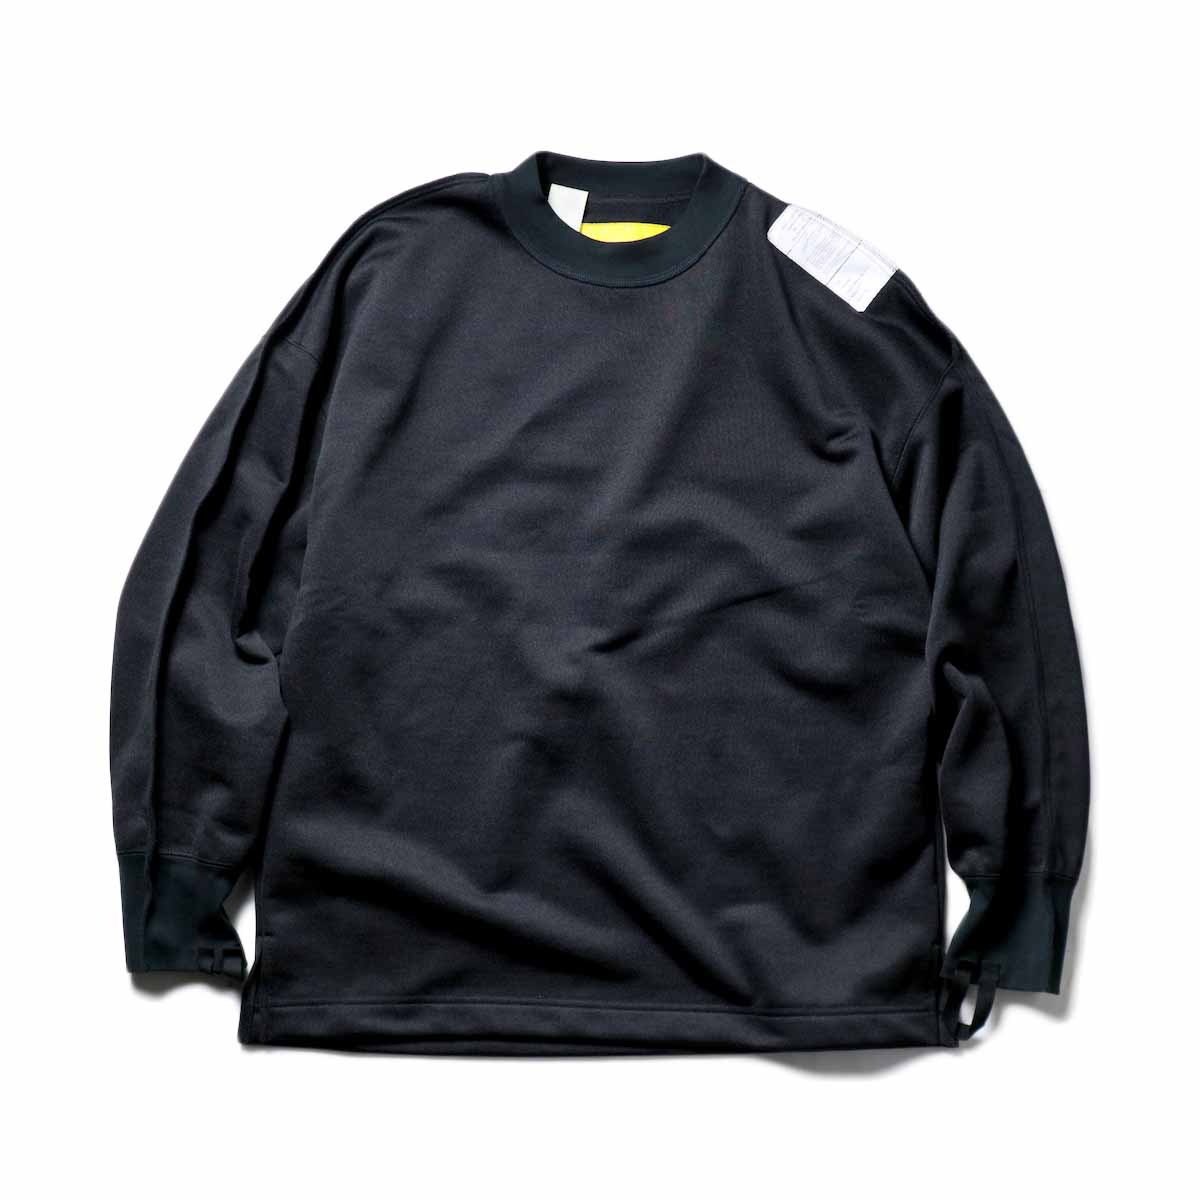 N.HOOLYWOOD / 9211-CS08-024pieces L/S Jersey (Black)正面